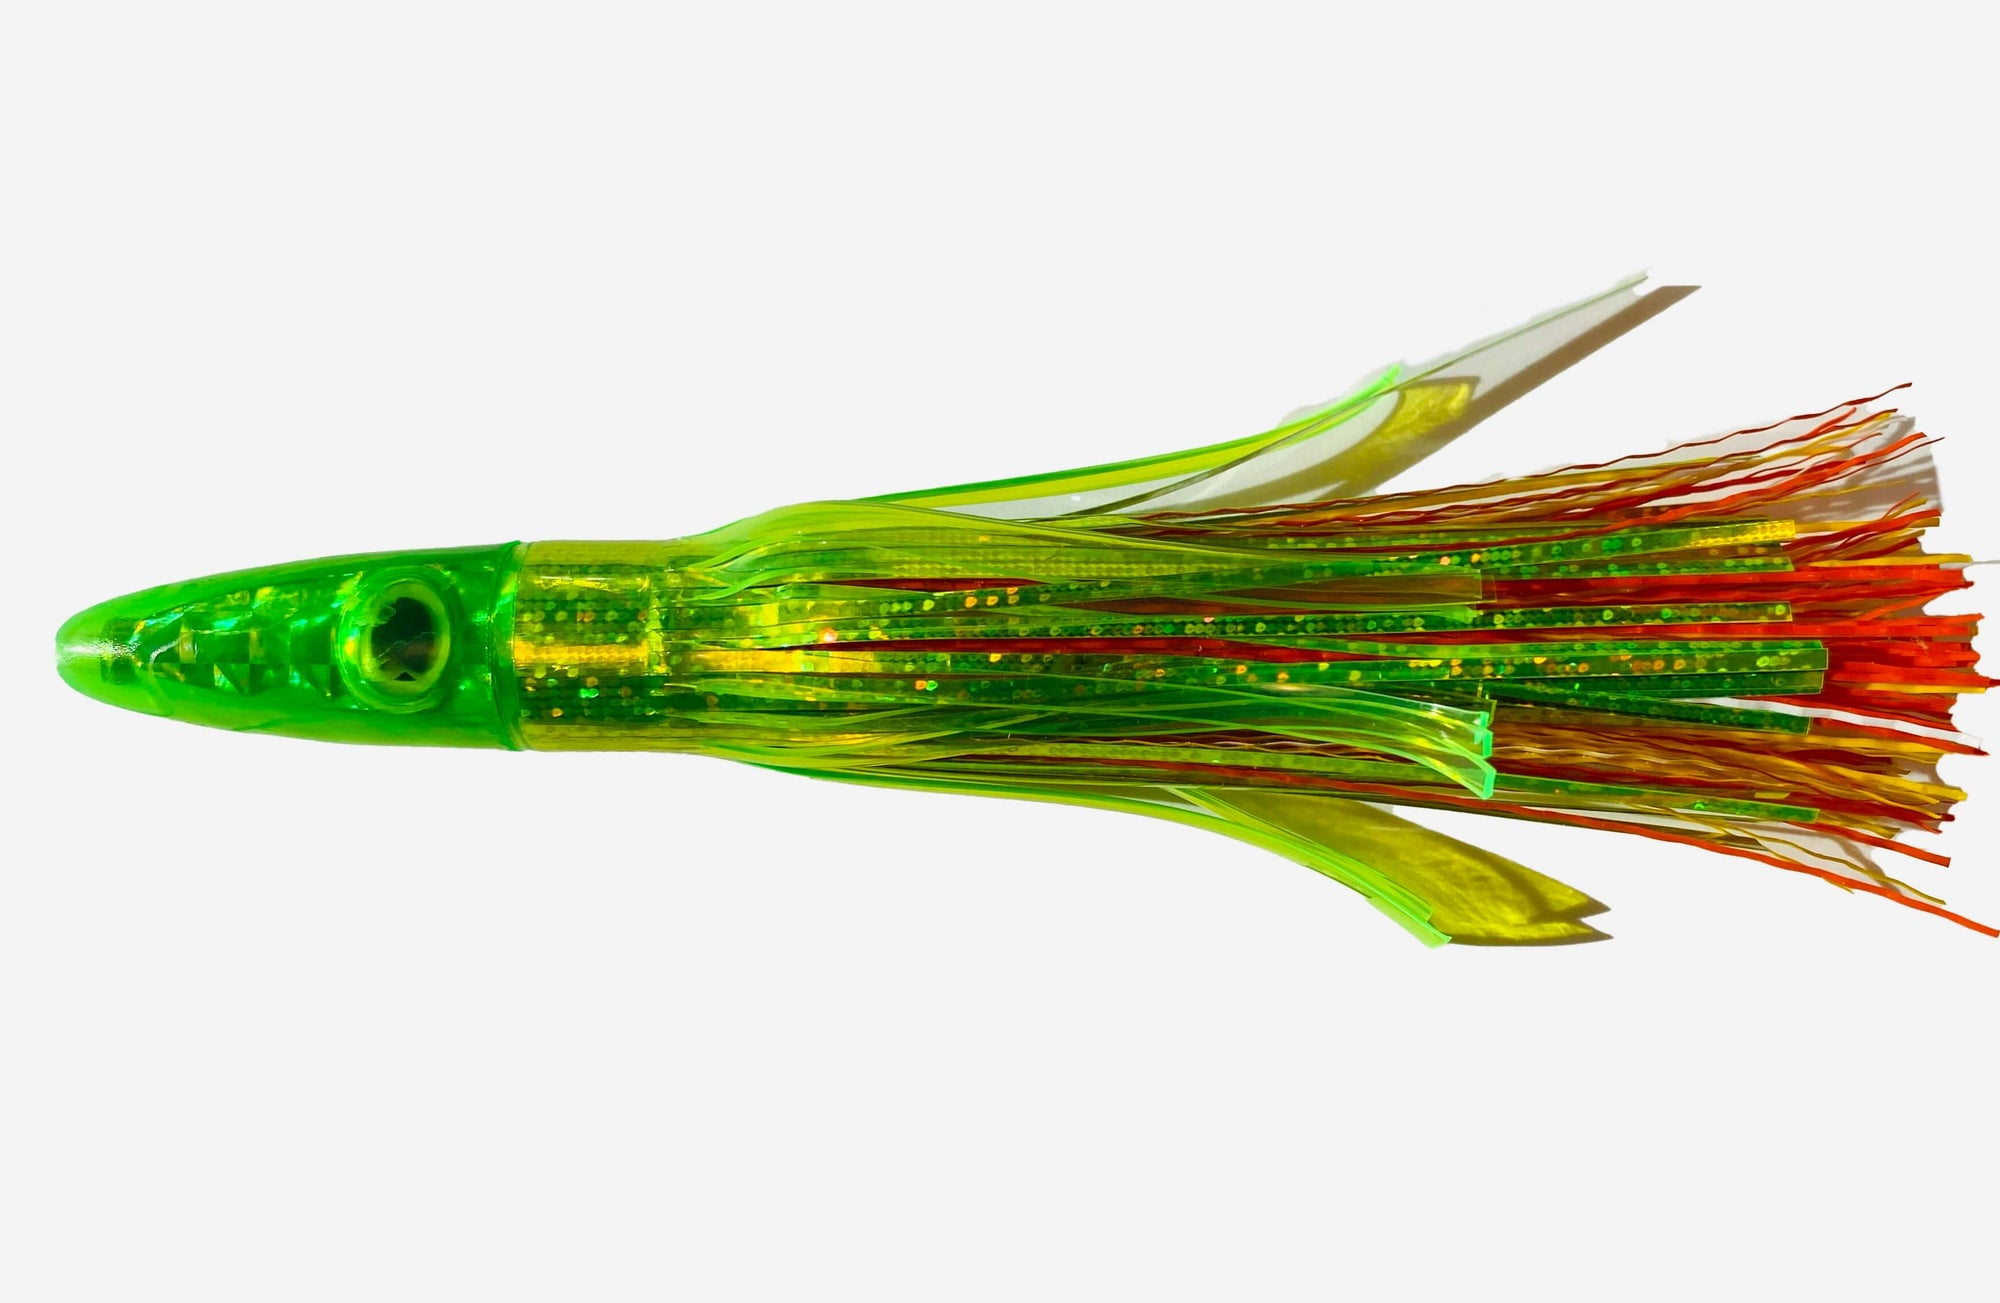 Zuker Grass Skirt Tuna Clone Hard Plastic Lures Zukers Orange/Yellow